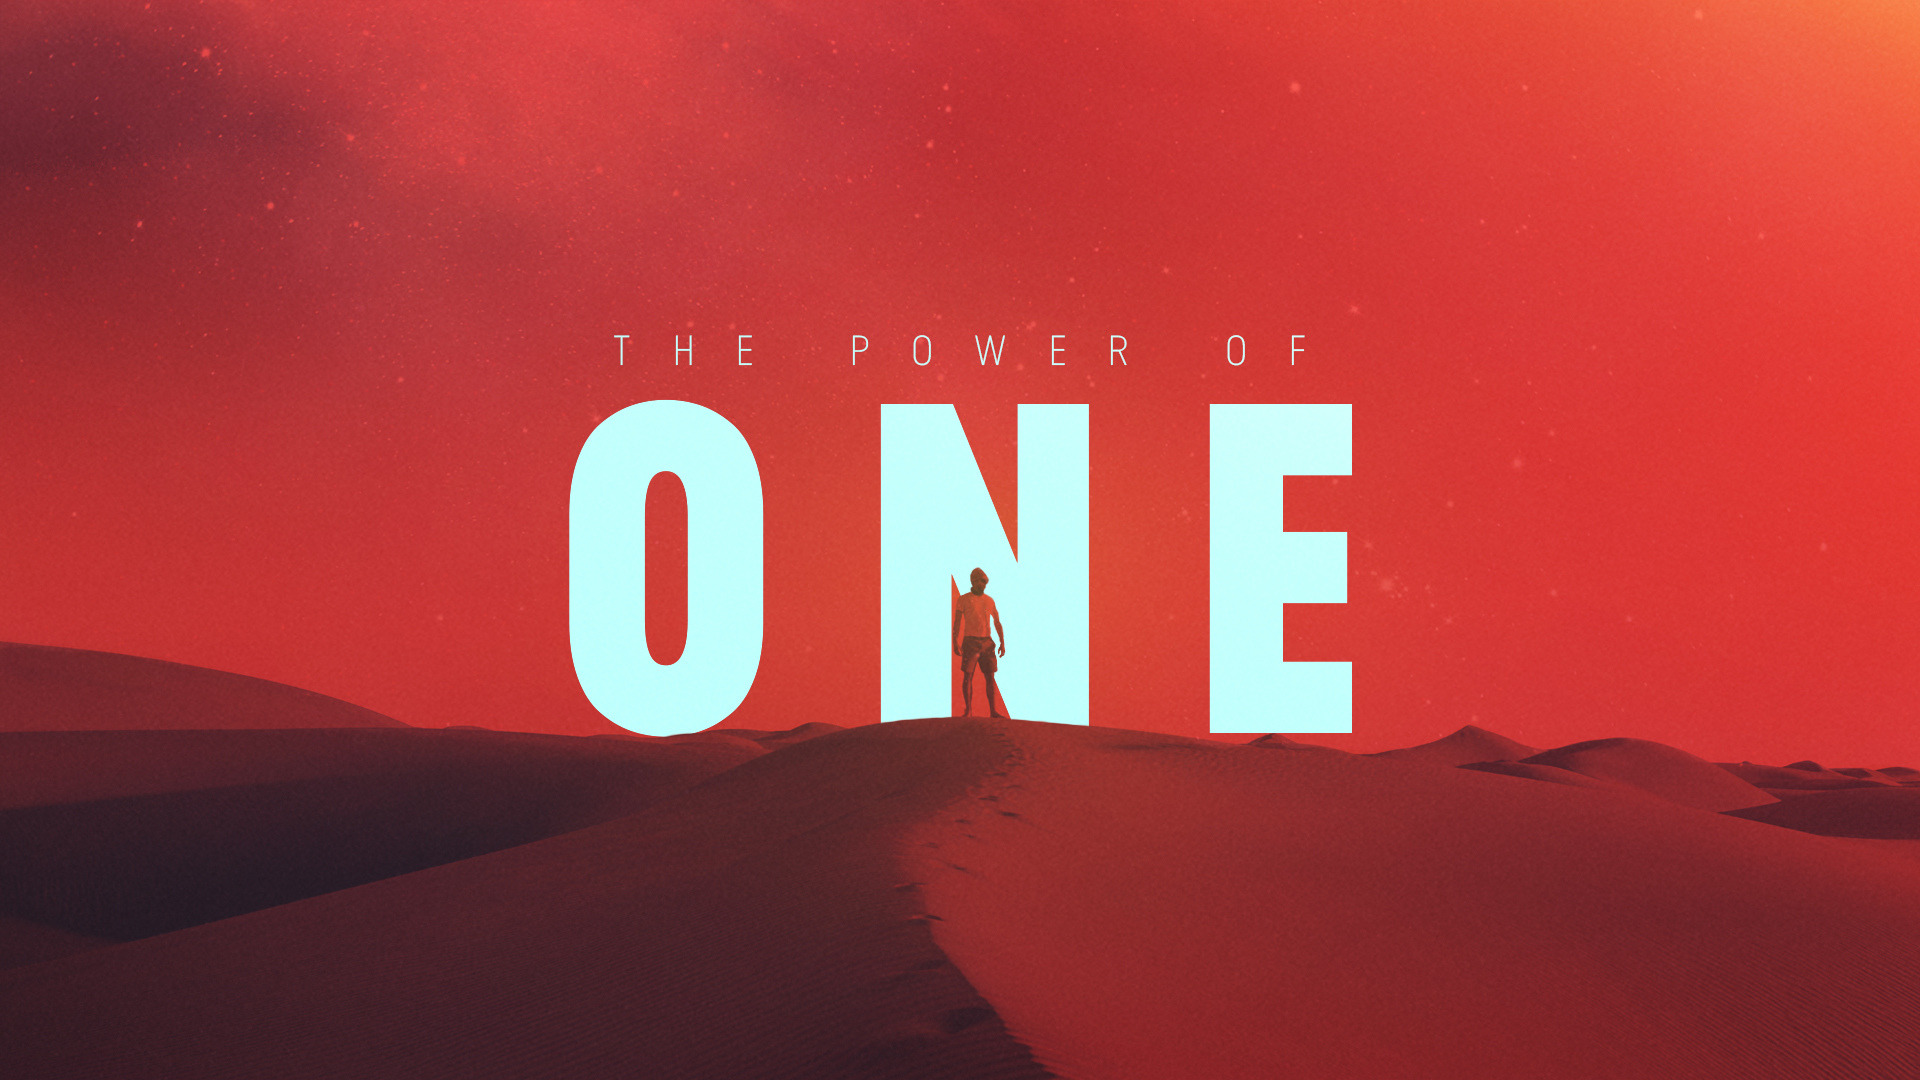 The Power of One - Part 1 Image